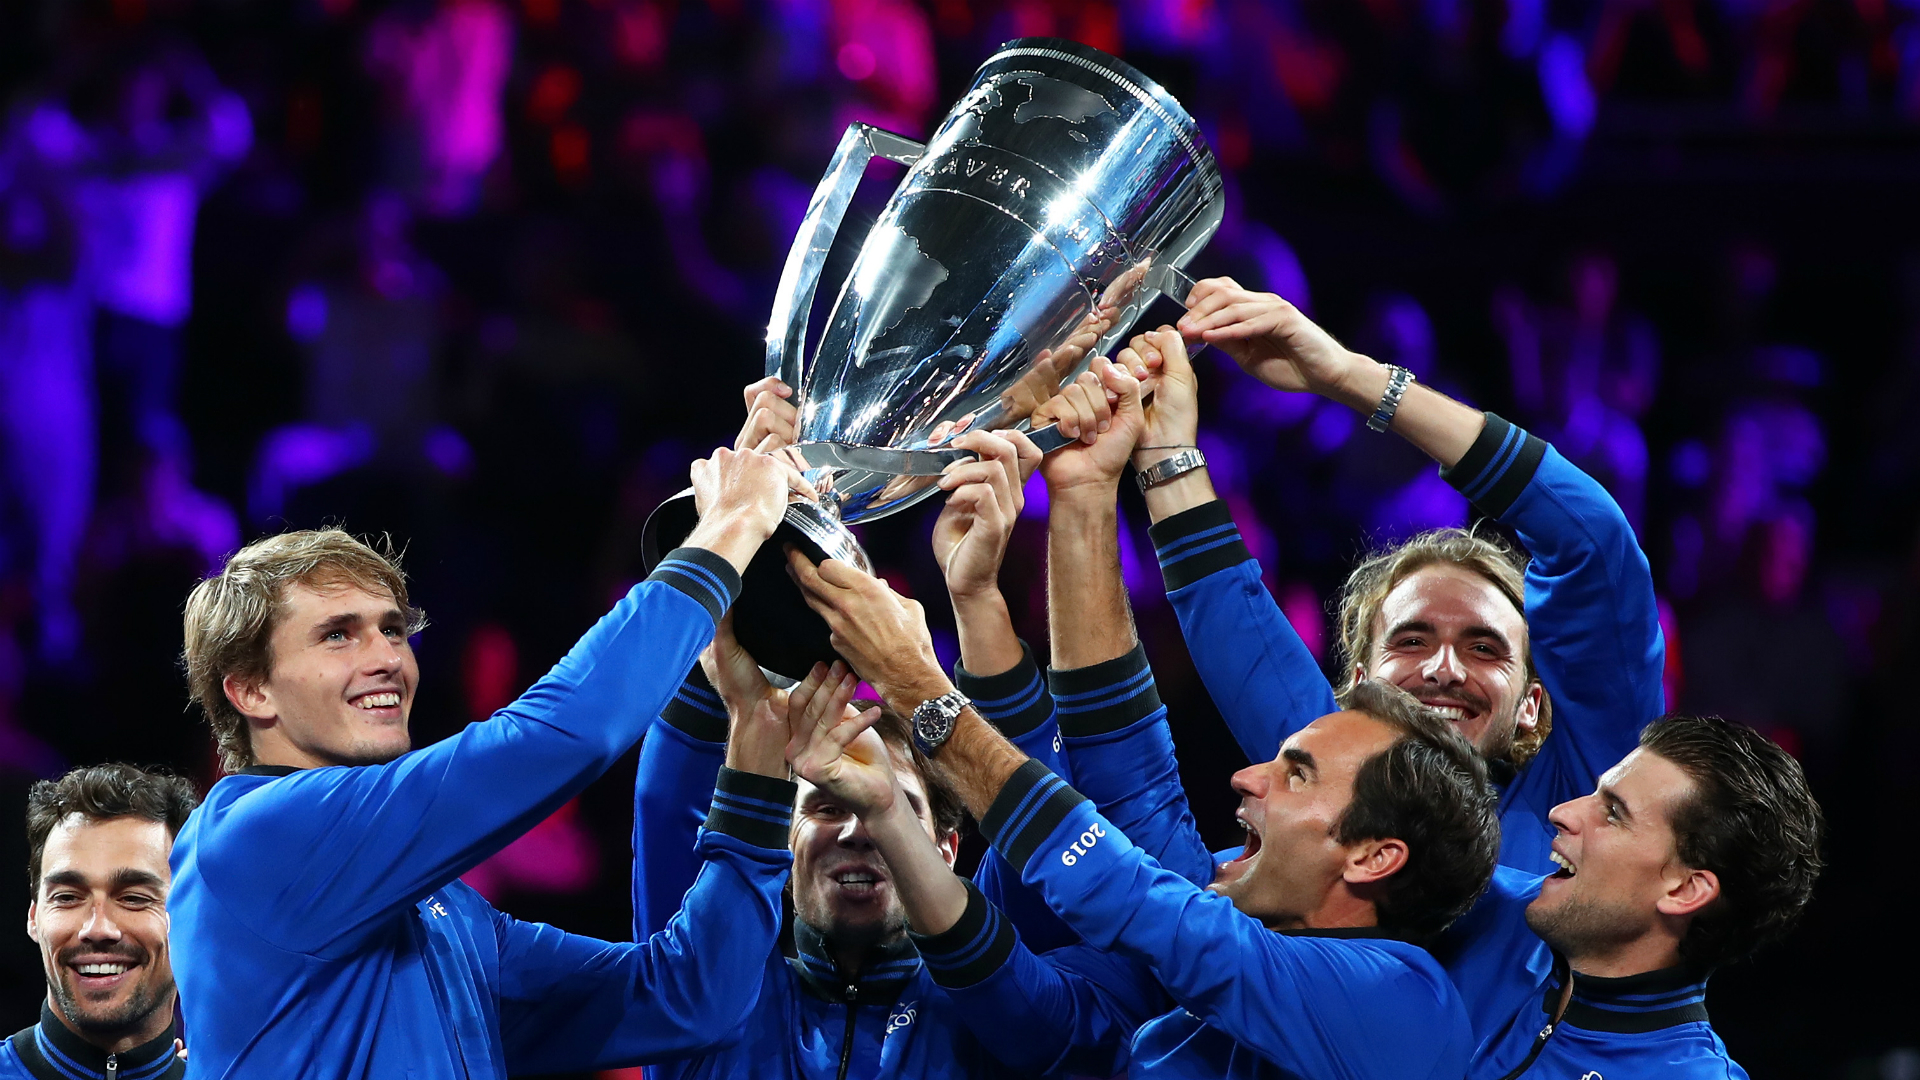 Borg's Team Europe triumph at Laver Cup as Zverev clinches victory